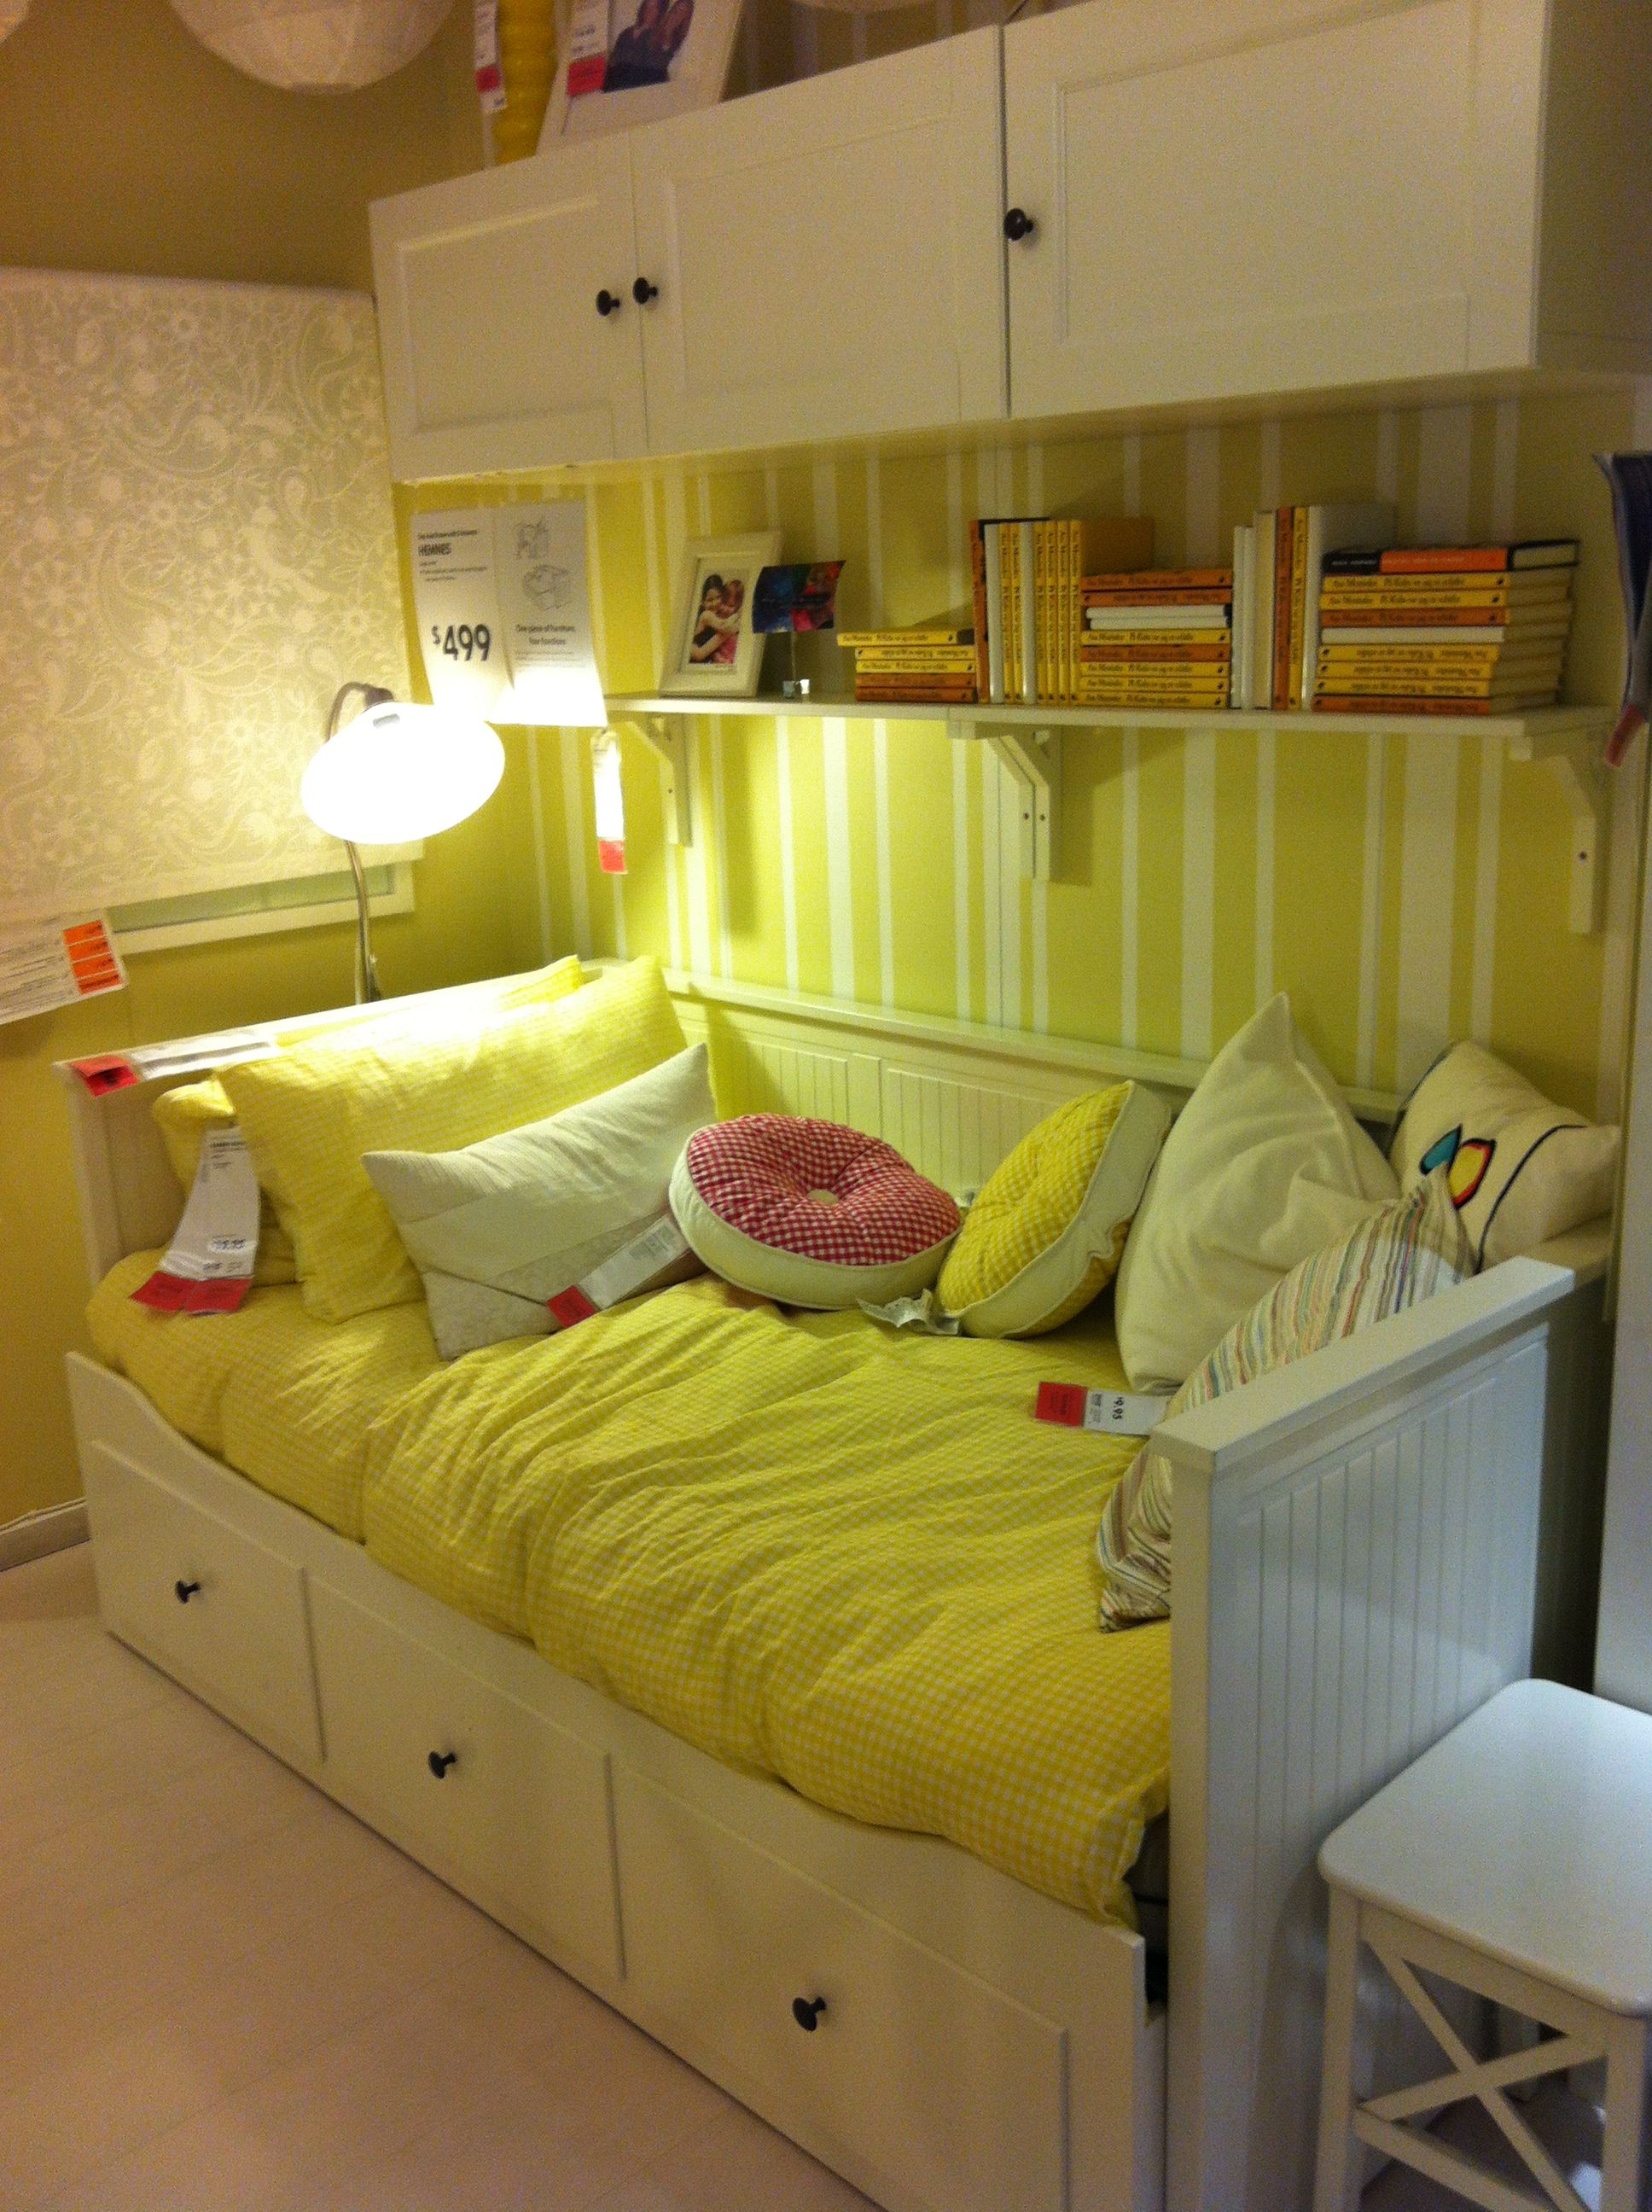 Ikea bedroom cupboards on wall i thought about this - Ikea almacenamiento ninos ...